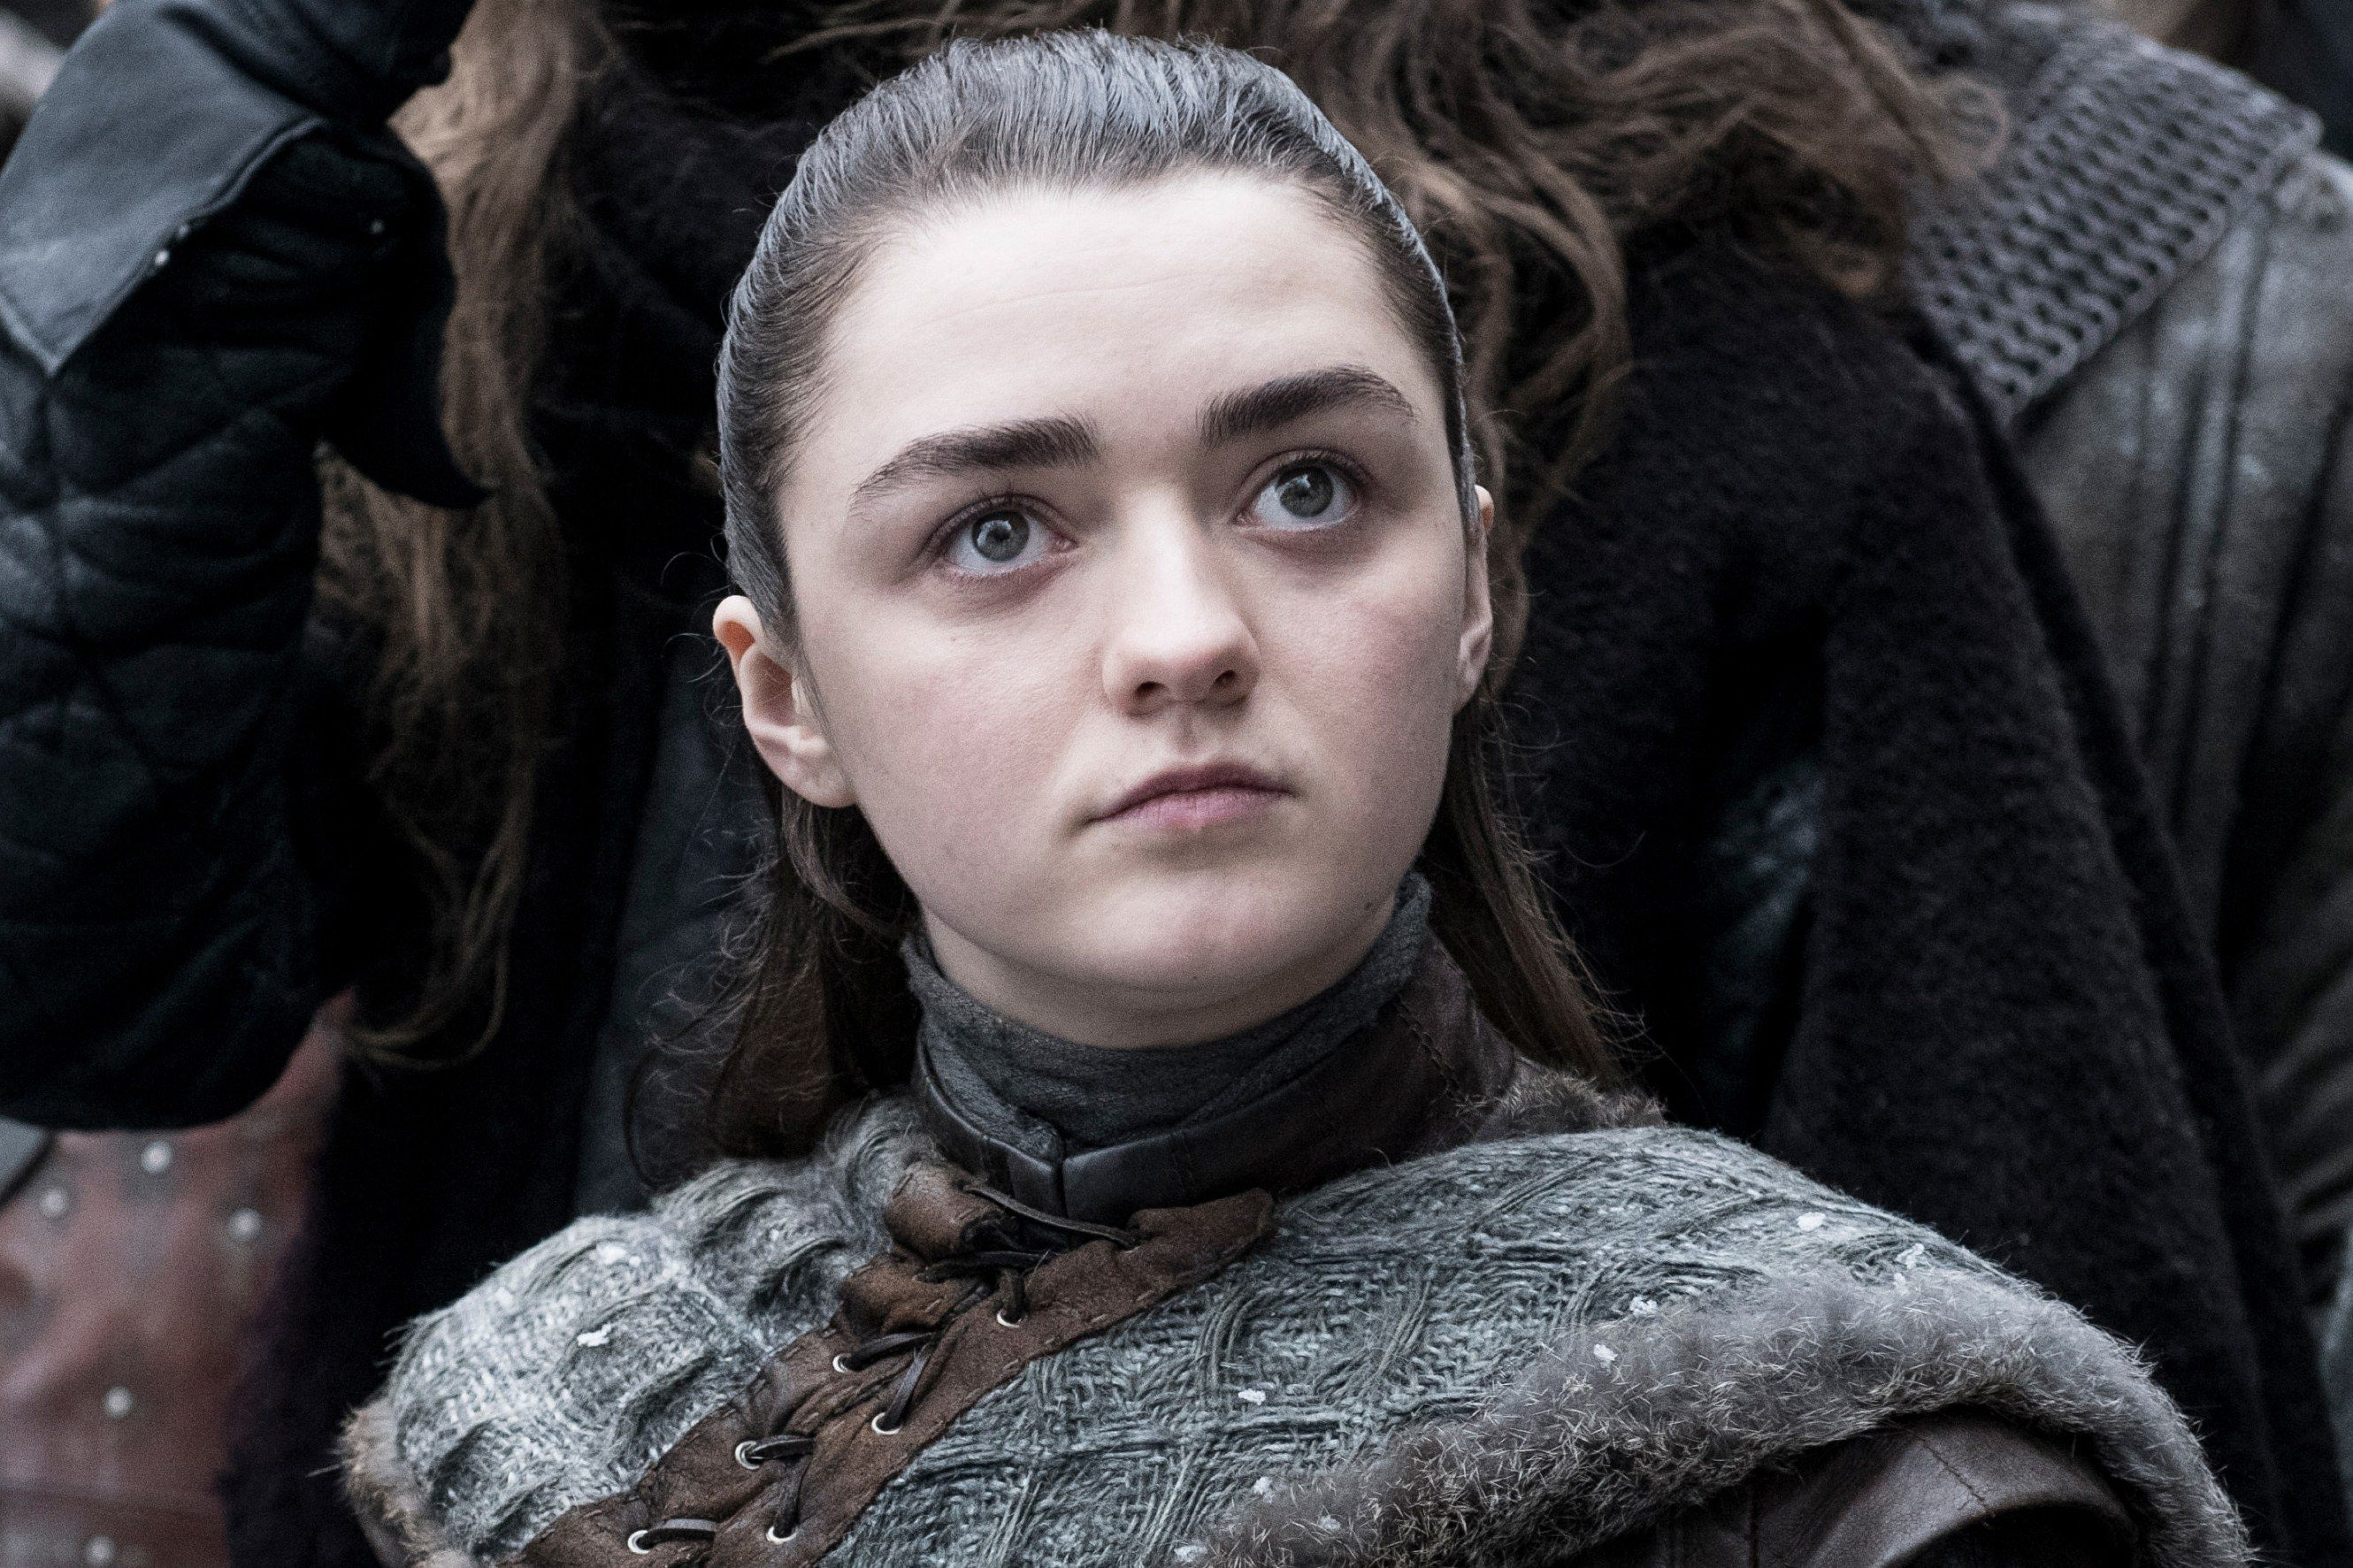 Is Arya Stark Going to Die on 'Game of Thrones'? Here's What We Know